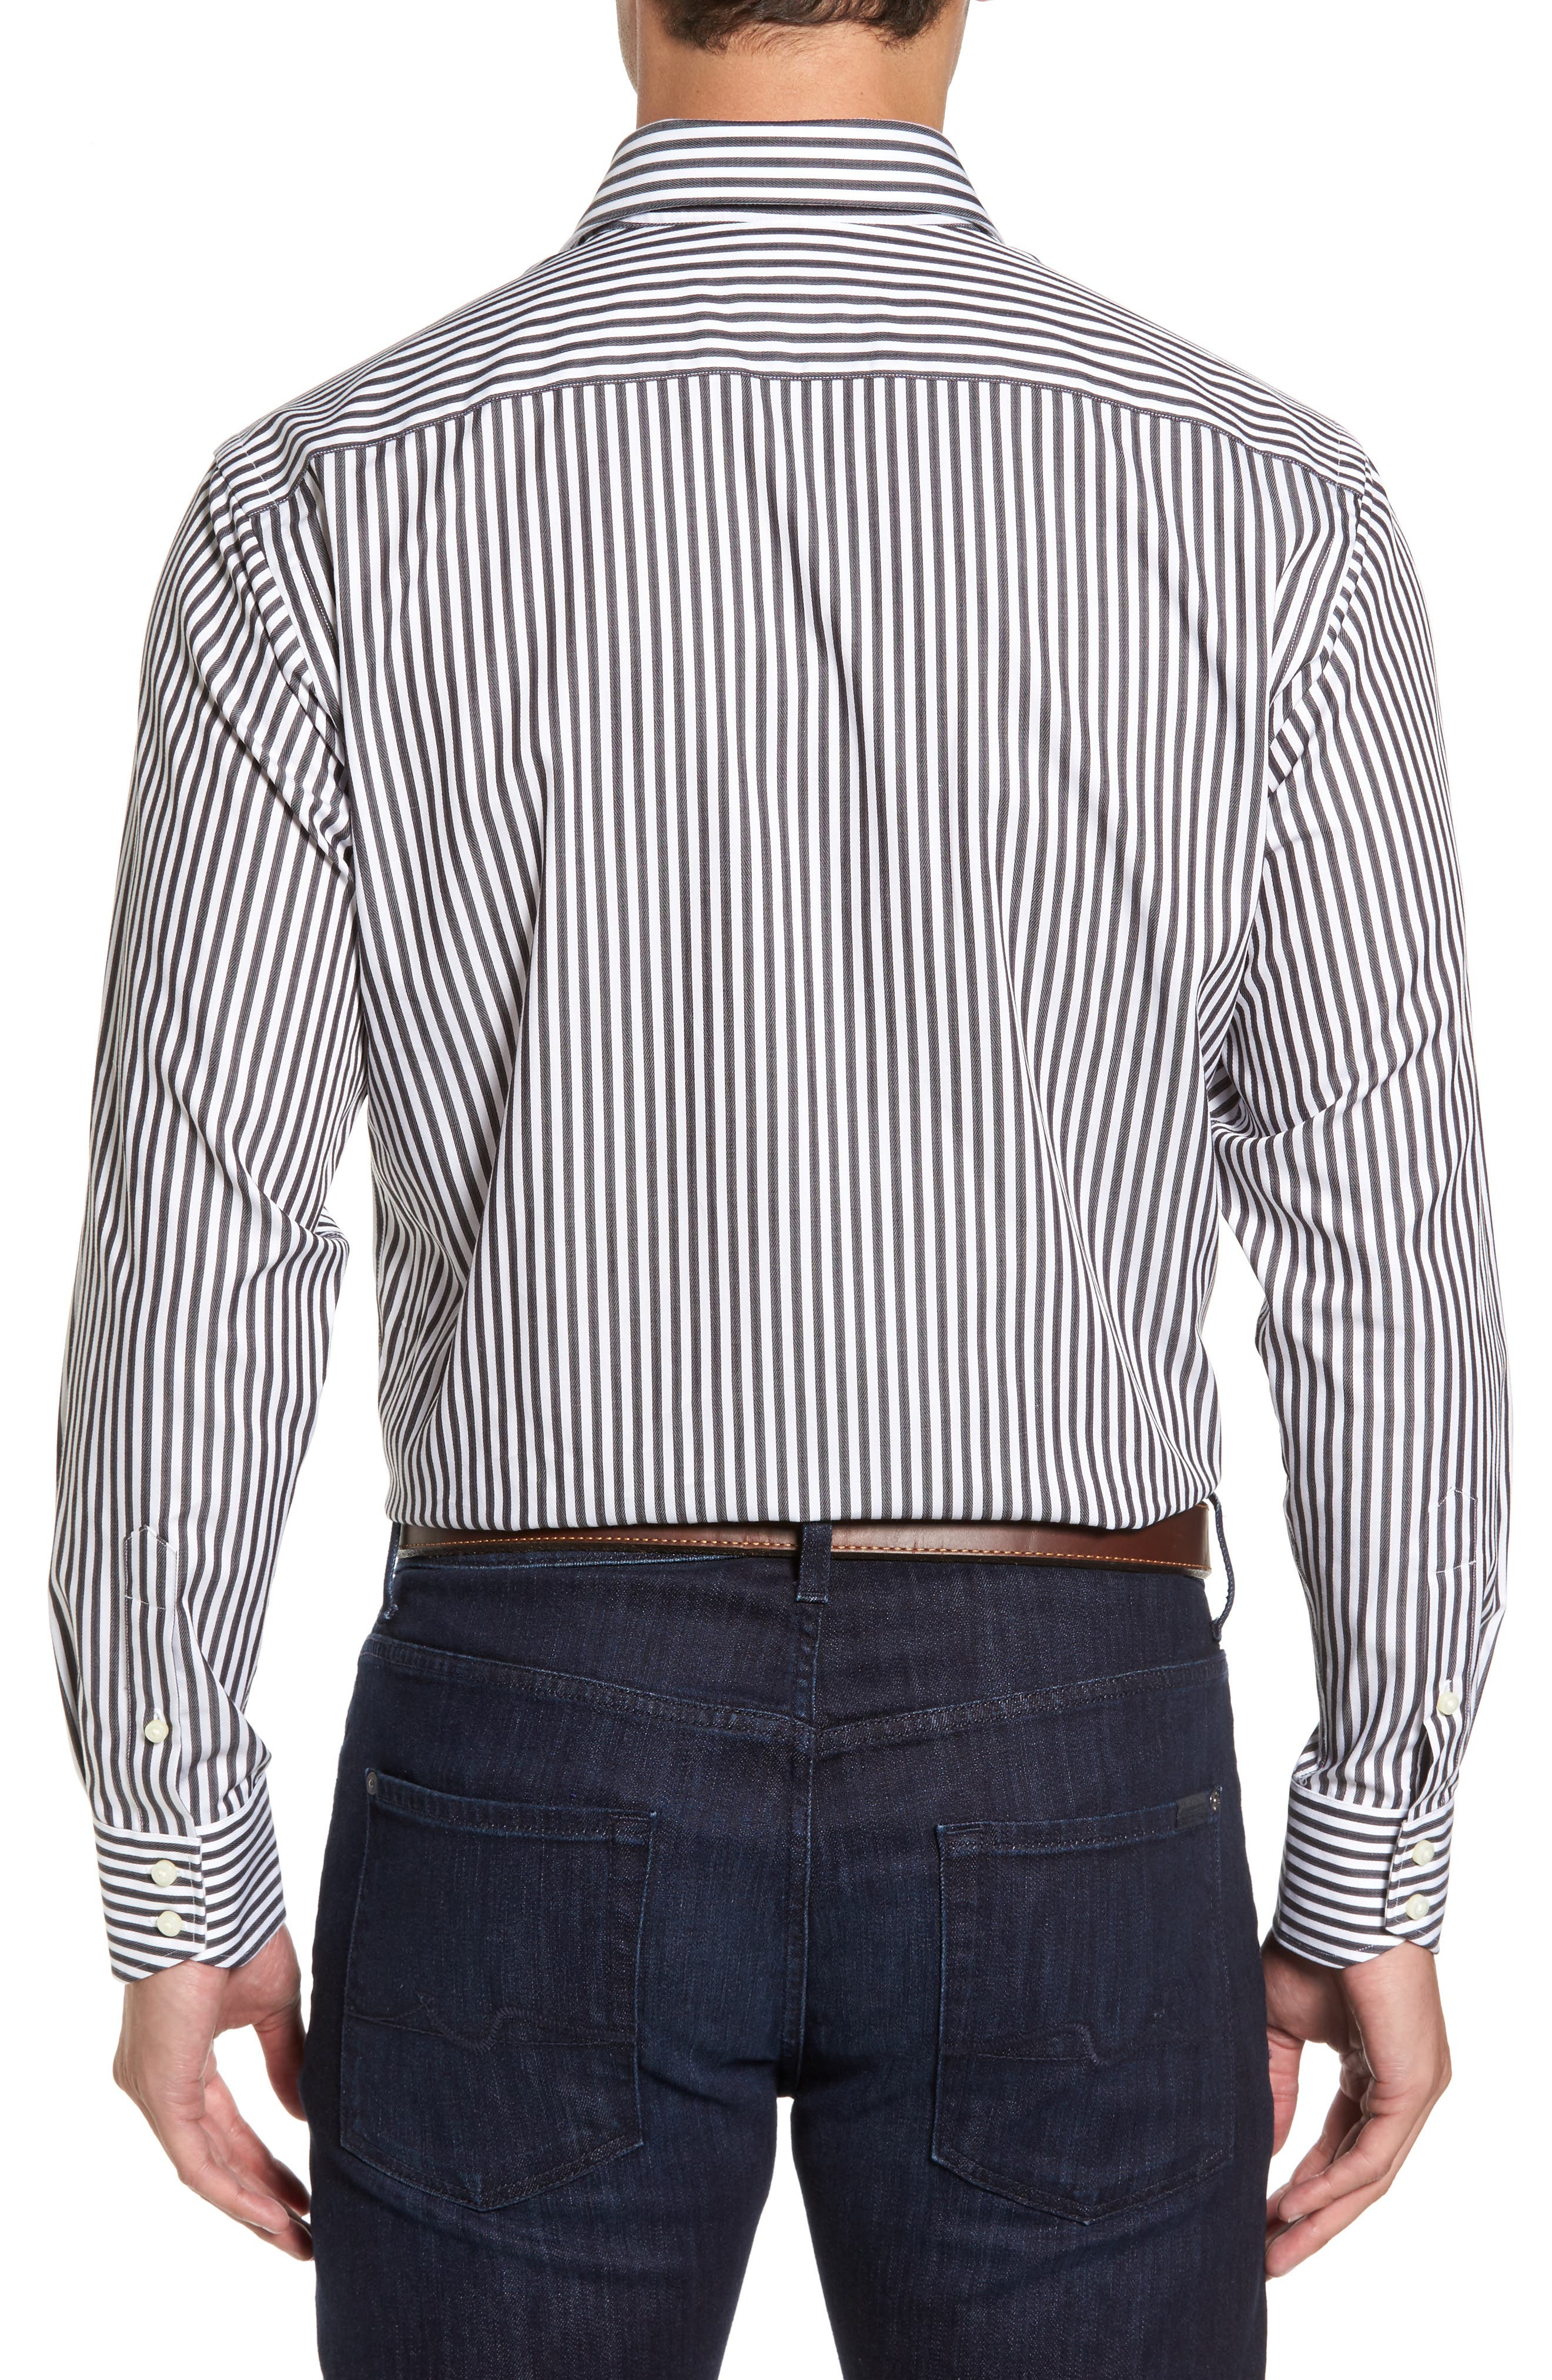 THOMAS DEAN,                             Regular Fit Stripe Herringbone Sport Shirt,                             Alternate thumbnail 2, color,                             021